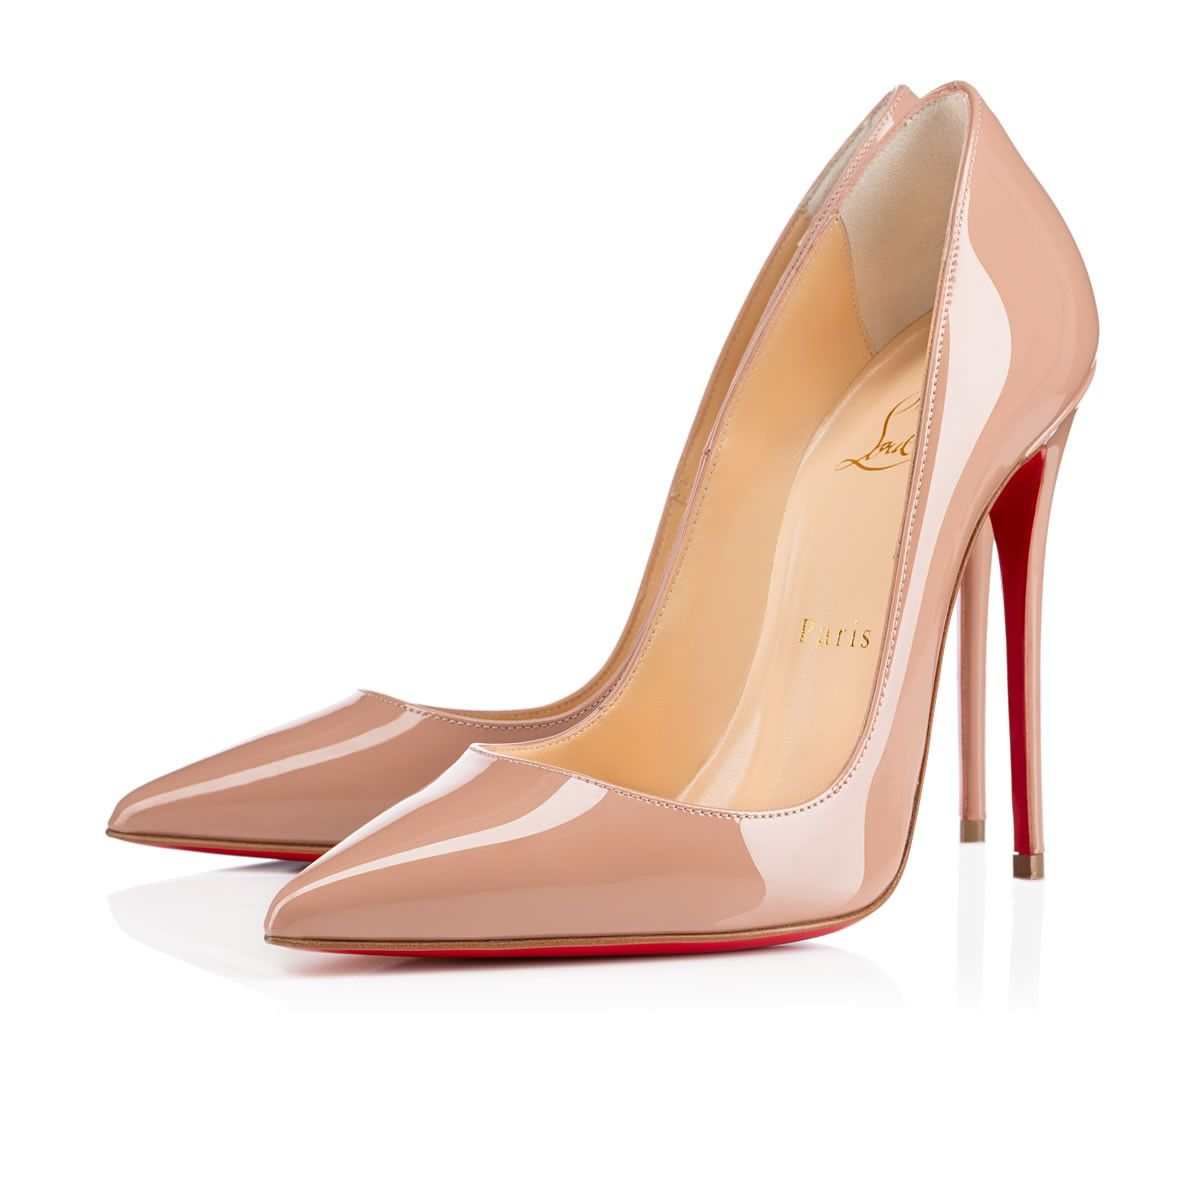 9a0d52bd396 SO KATE PATENT 120 Nude Patent Calfskin - Women Shoes - Christian Louboutin